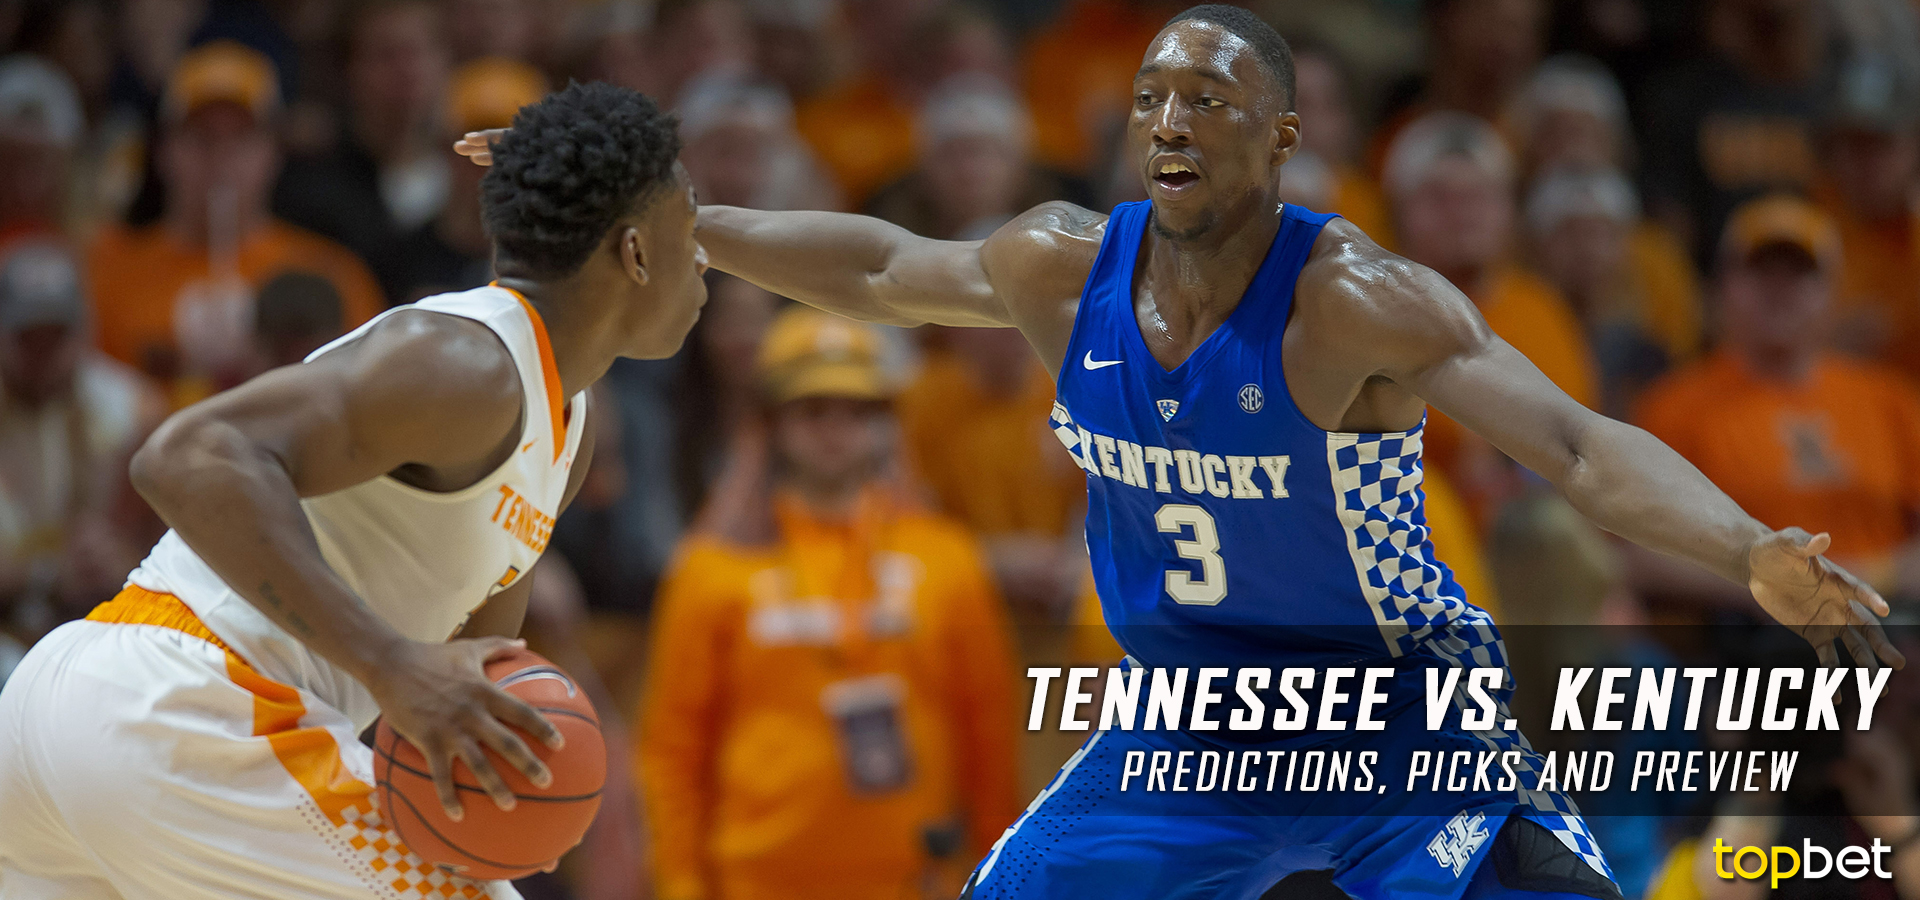 Uk Basketball Uk Vs Tenn: Tennessee Vs Kentucky Basketball Predictions And Preview